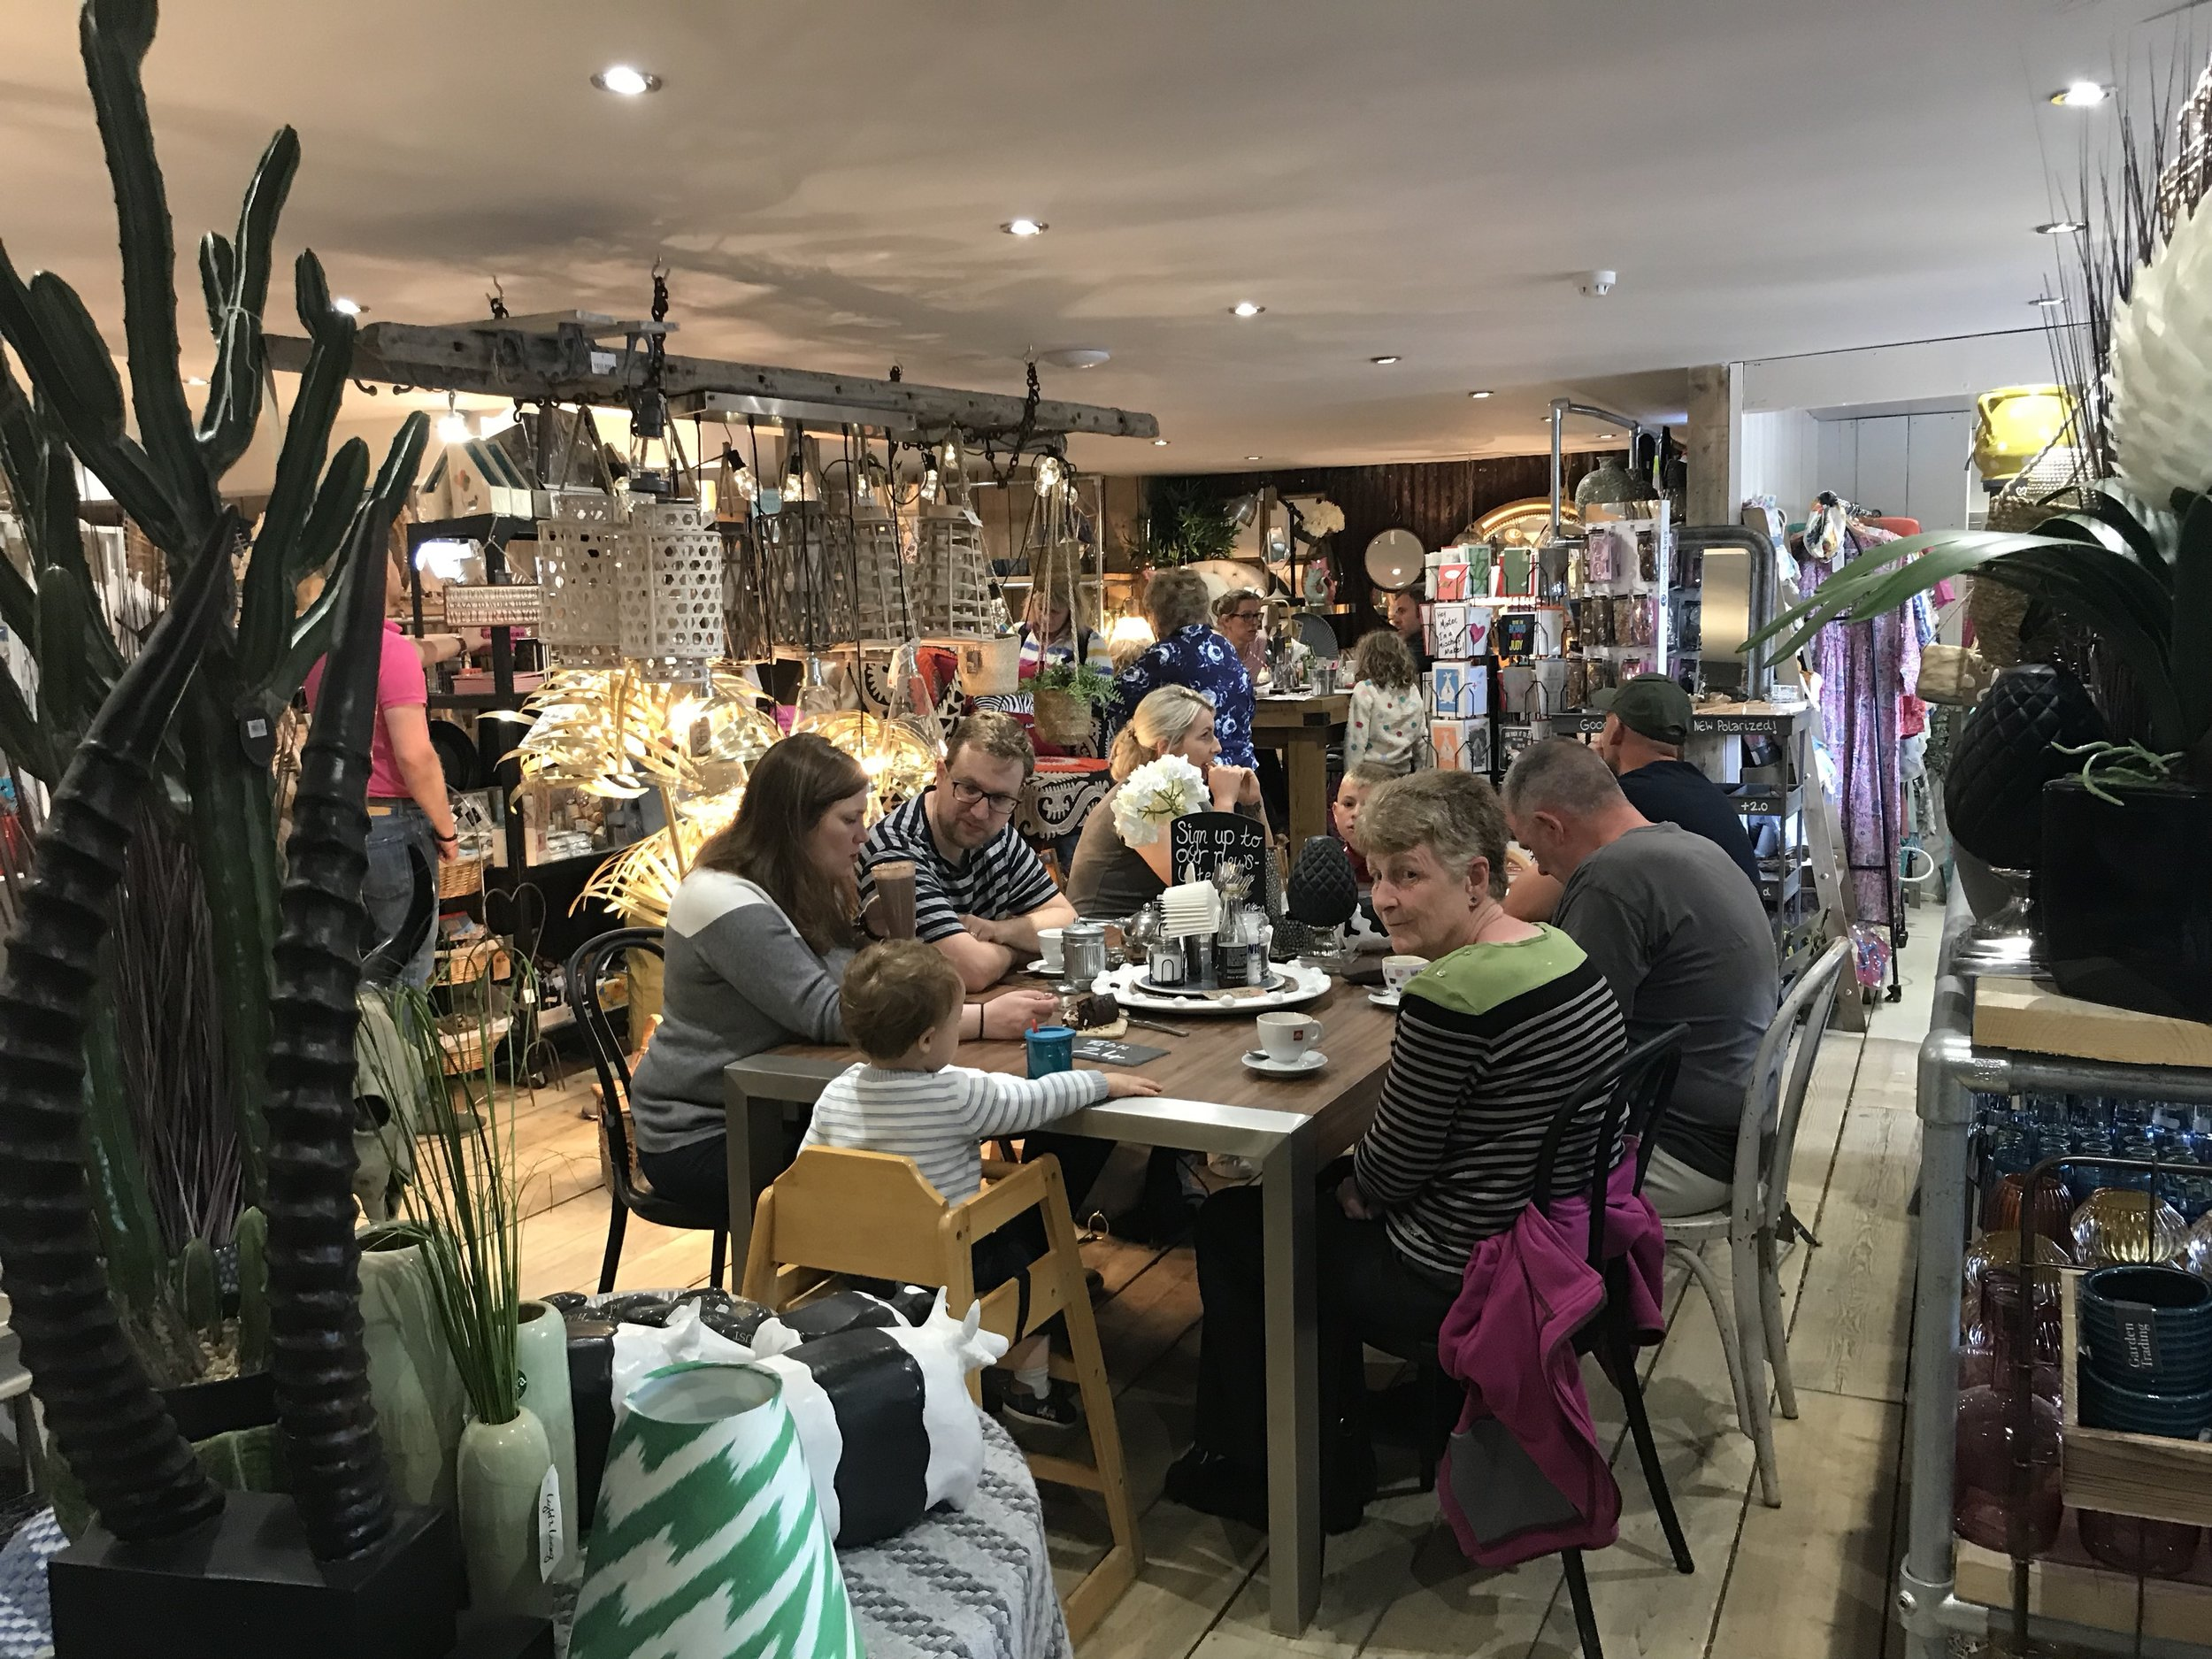 You can eat the delicious food at Thornham Deli literally surrounded by the stylish products on sale